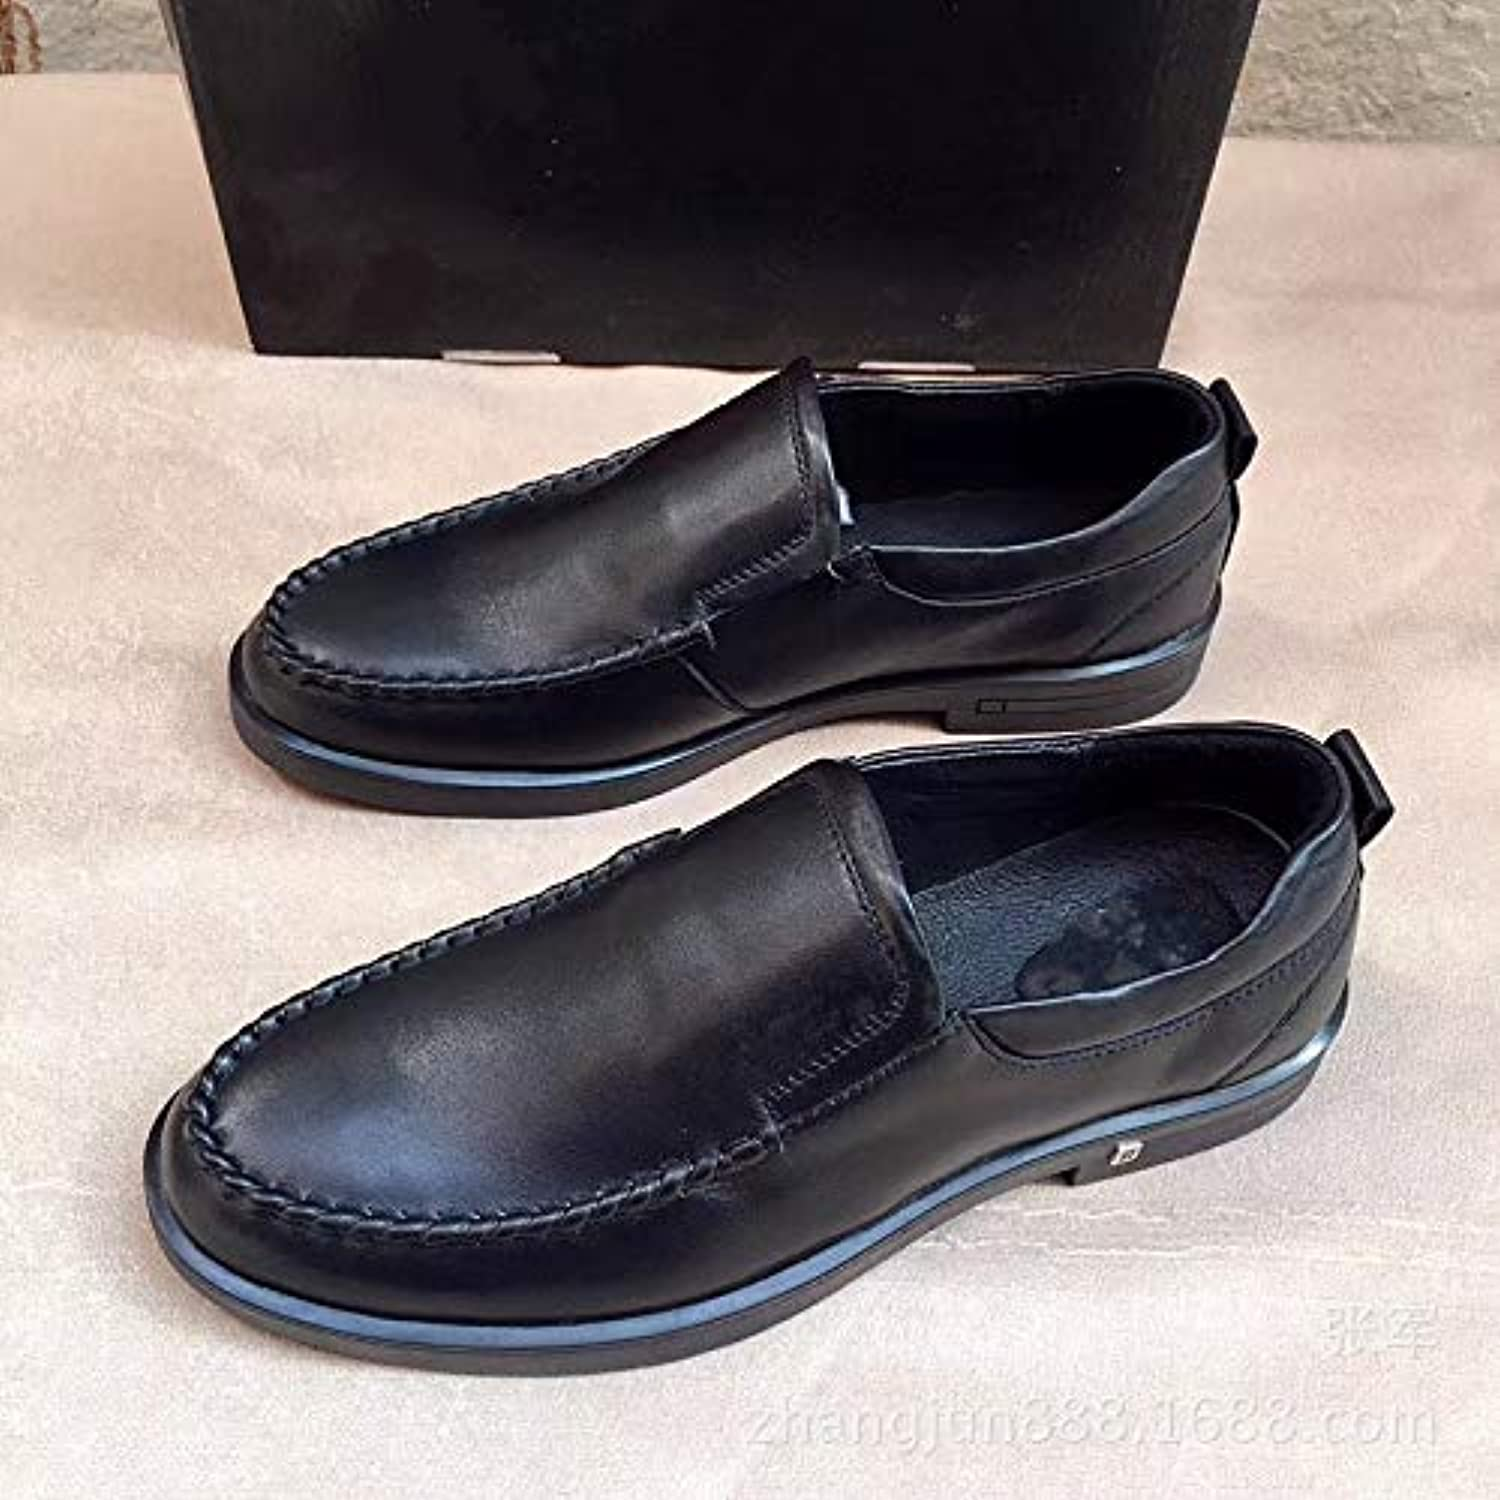 LOVDRAM Men'S Leather shoes Men'S shoes Fashion Leather Casual shoes Men'S shoes Business Dress shoes